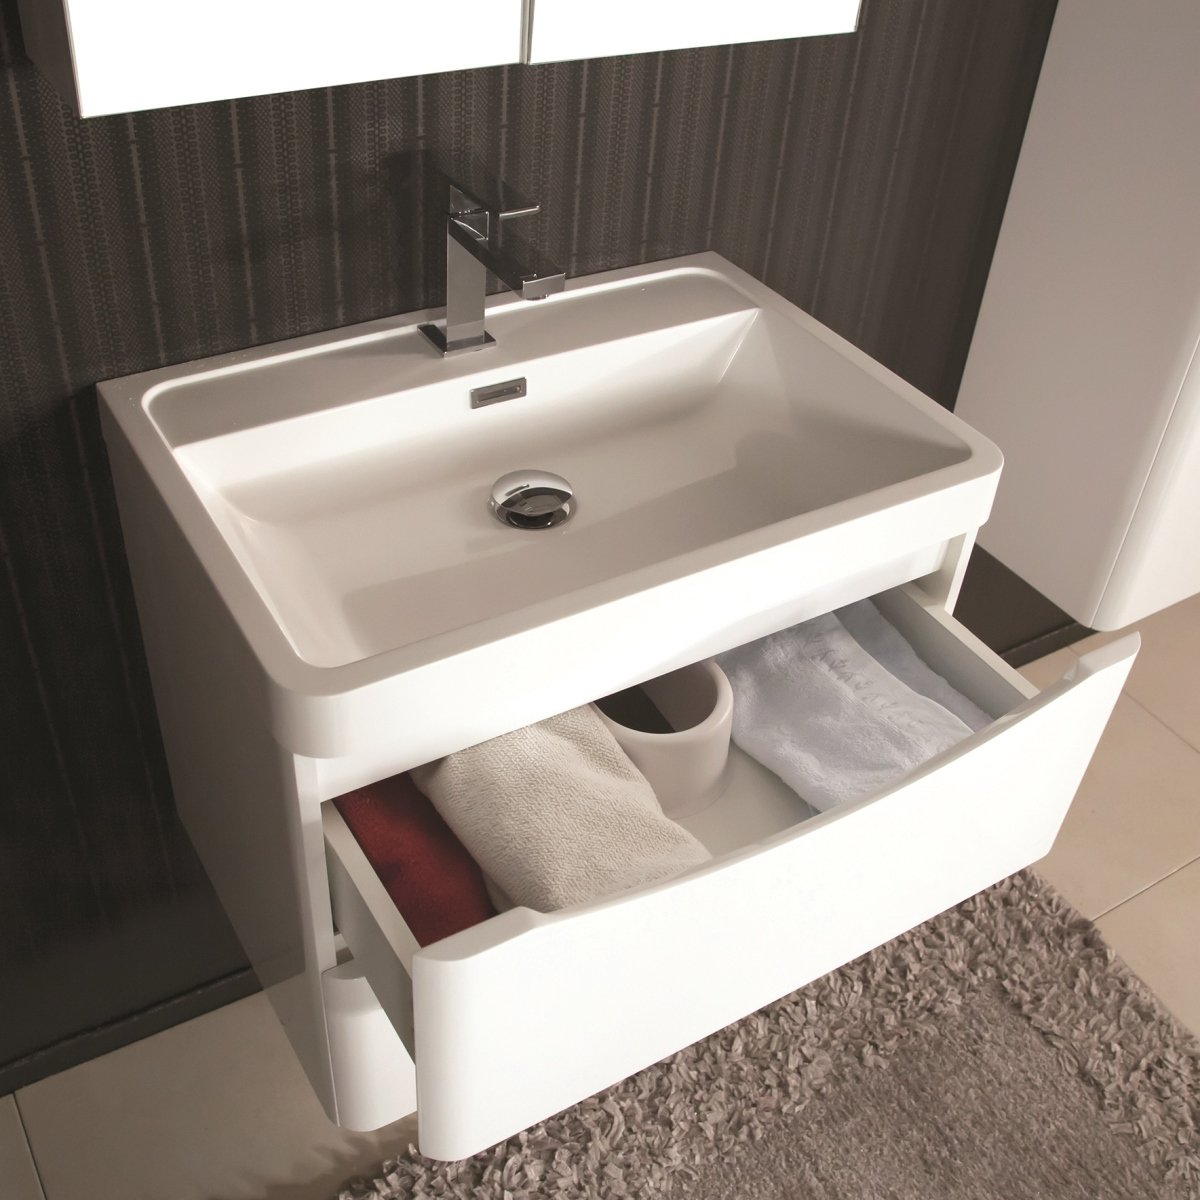 Awesome Mobili Bagno Profondità 40 Gallery - Skilifts.us - skilifts.us